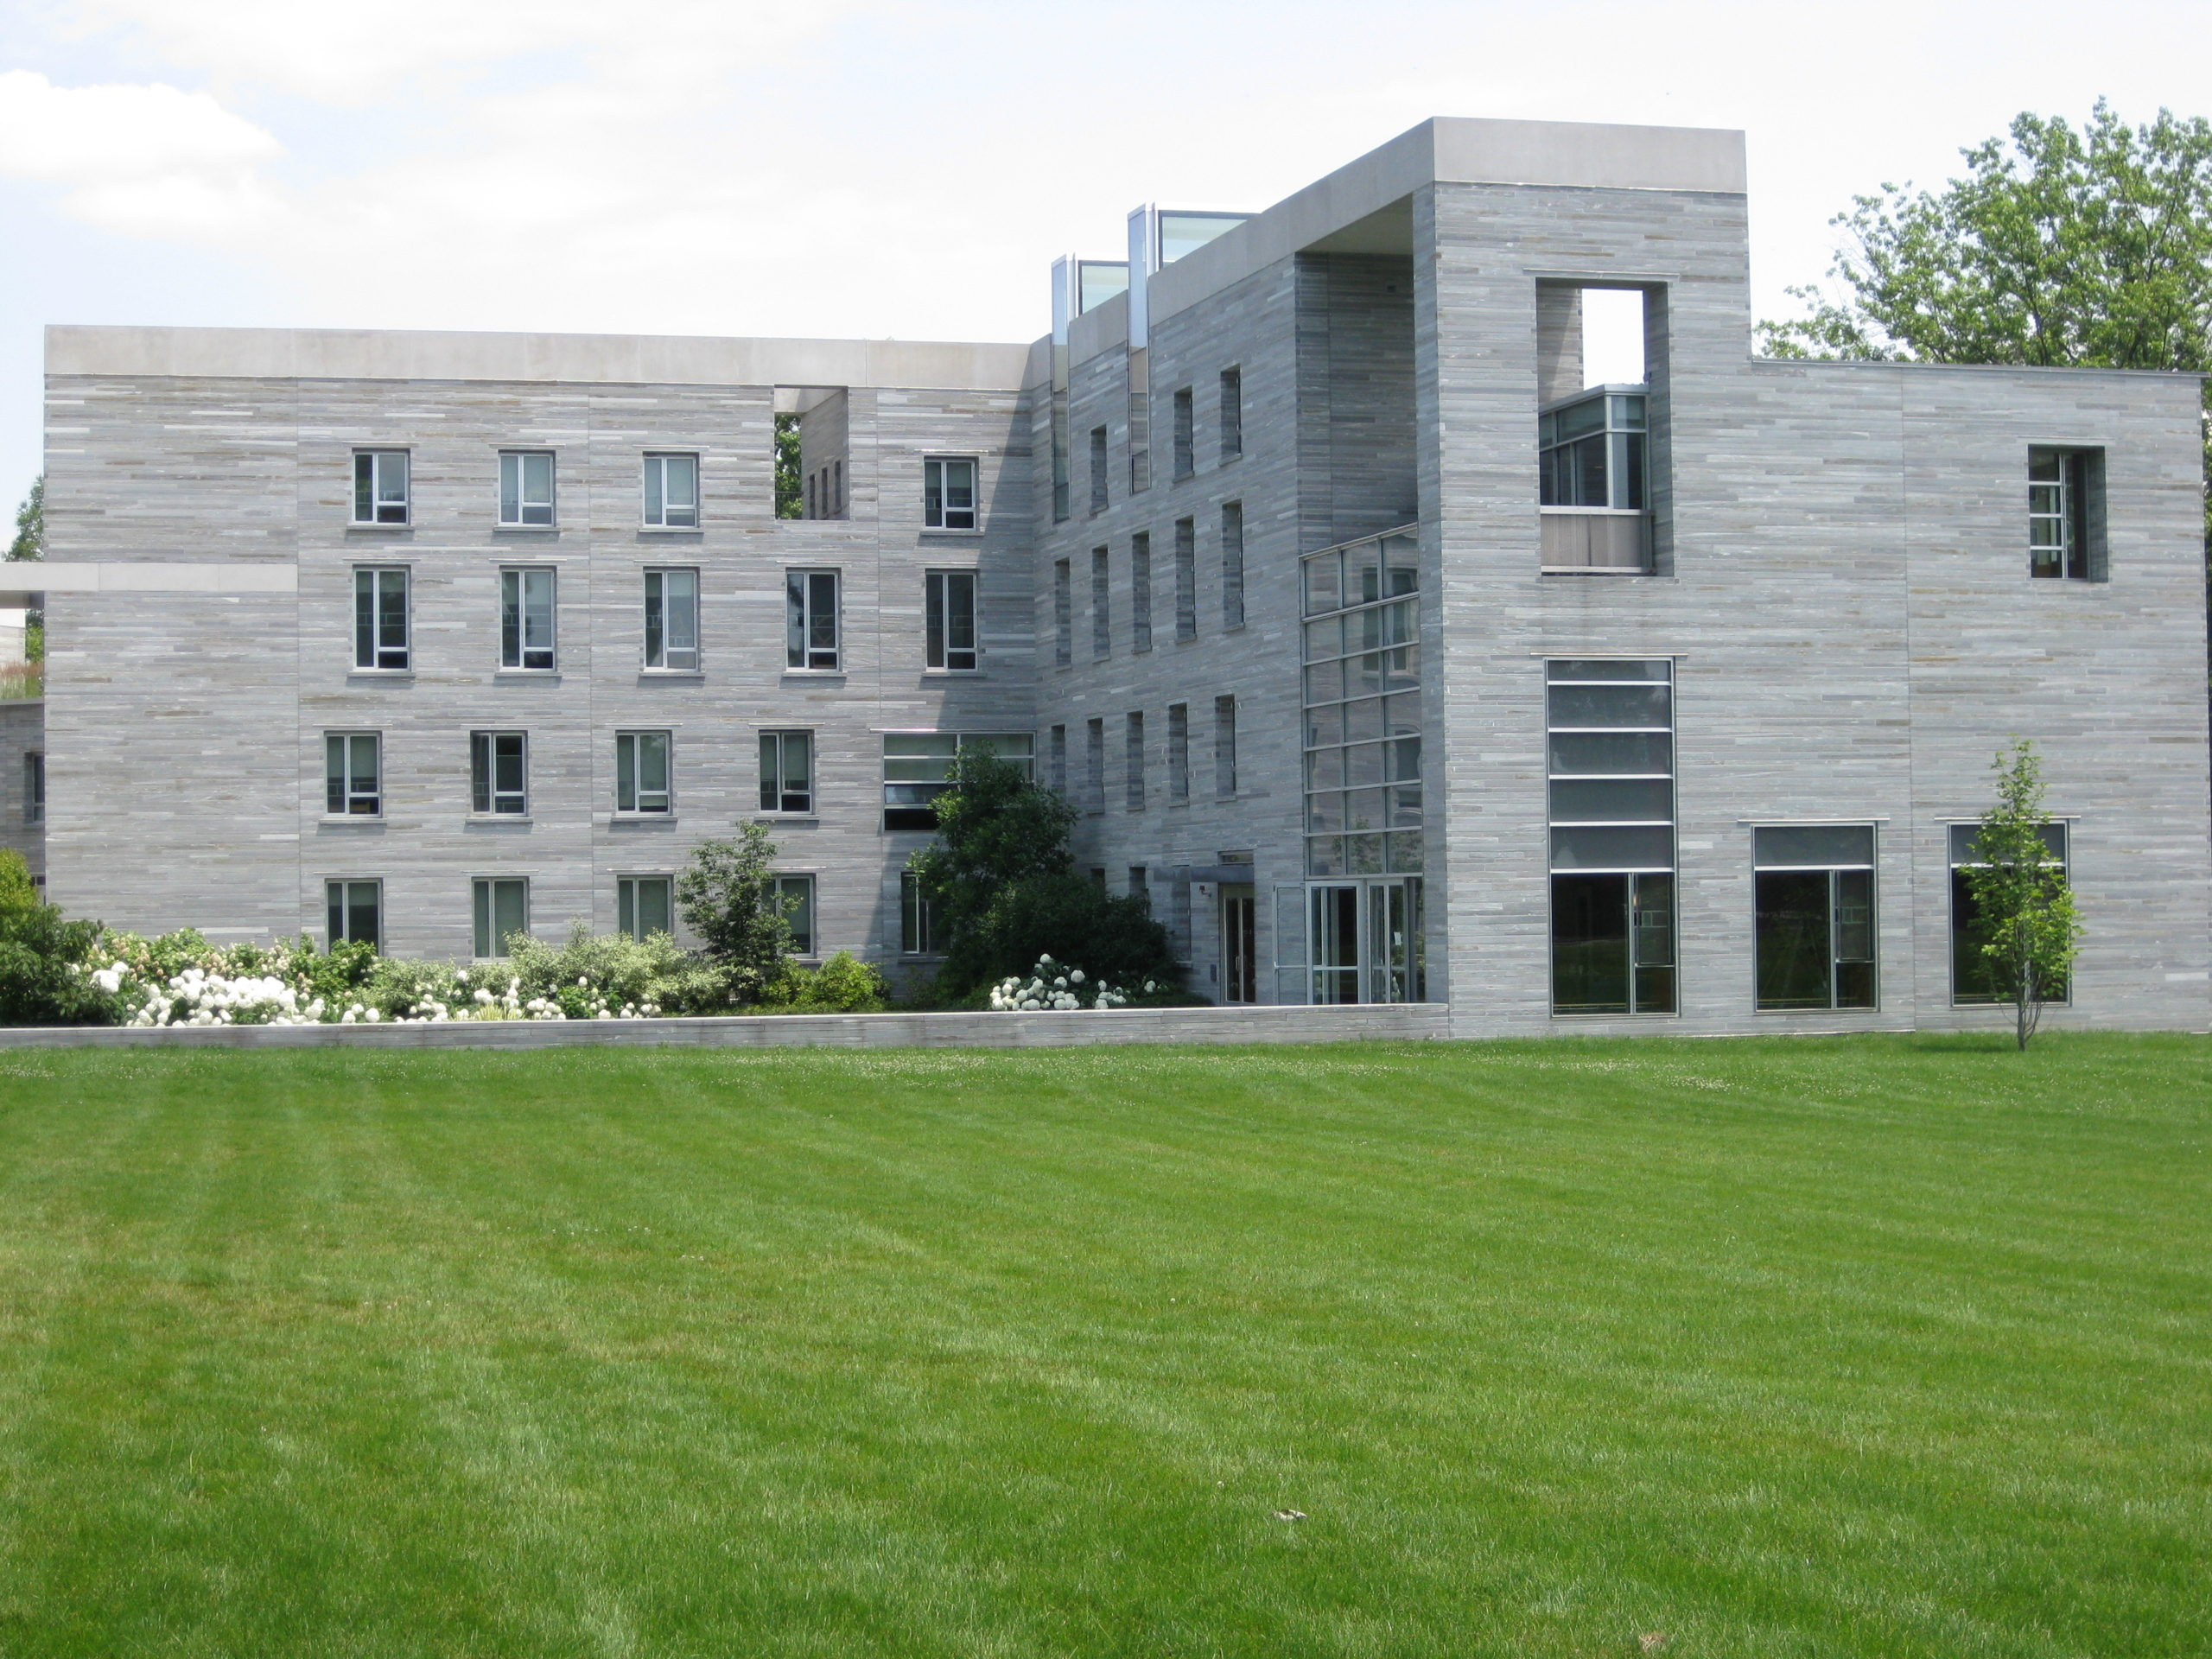 Alice Paul Hall, Swarthmore College